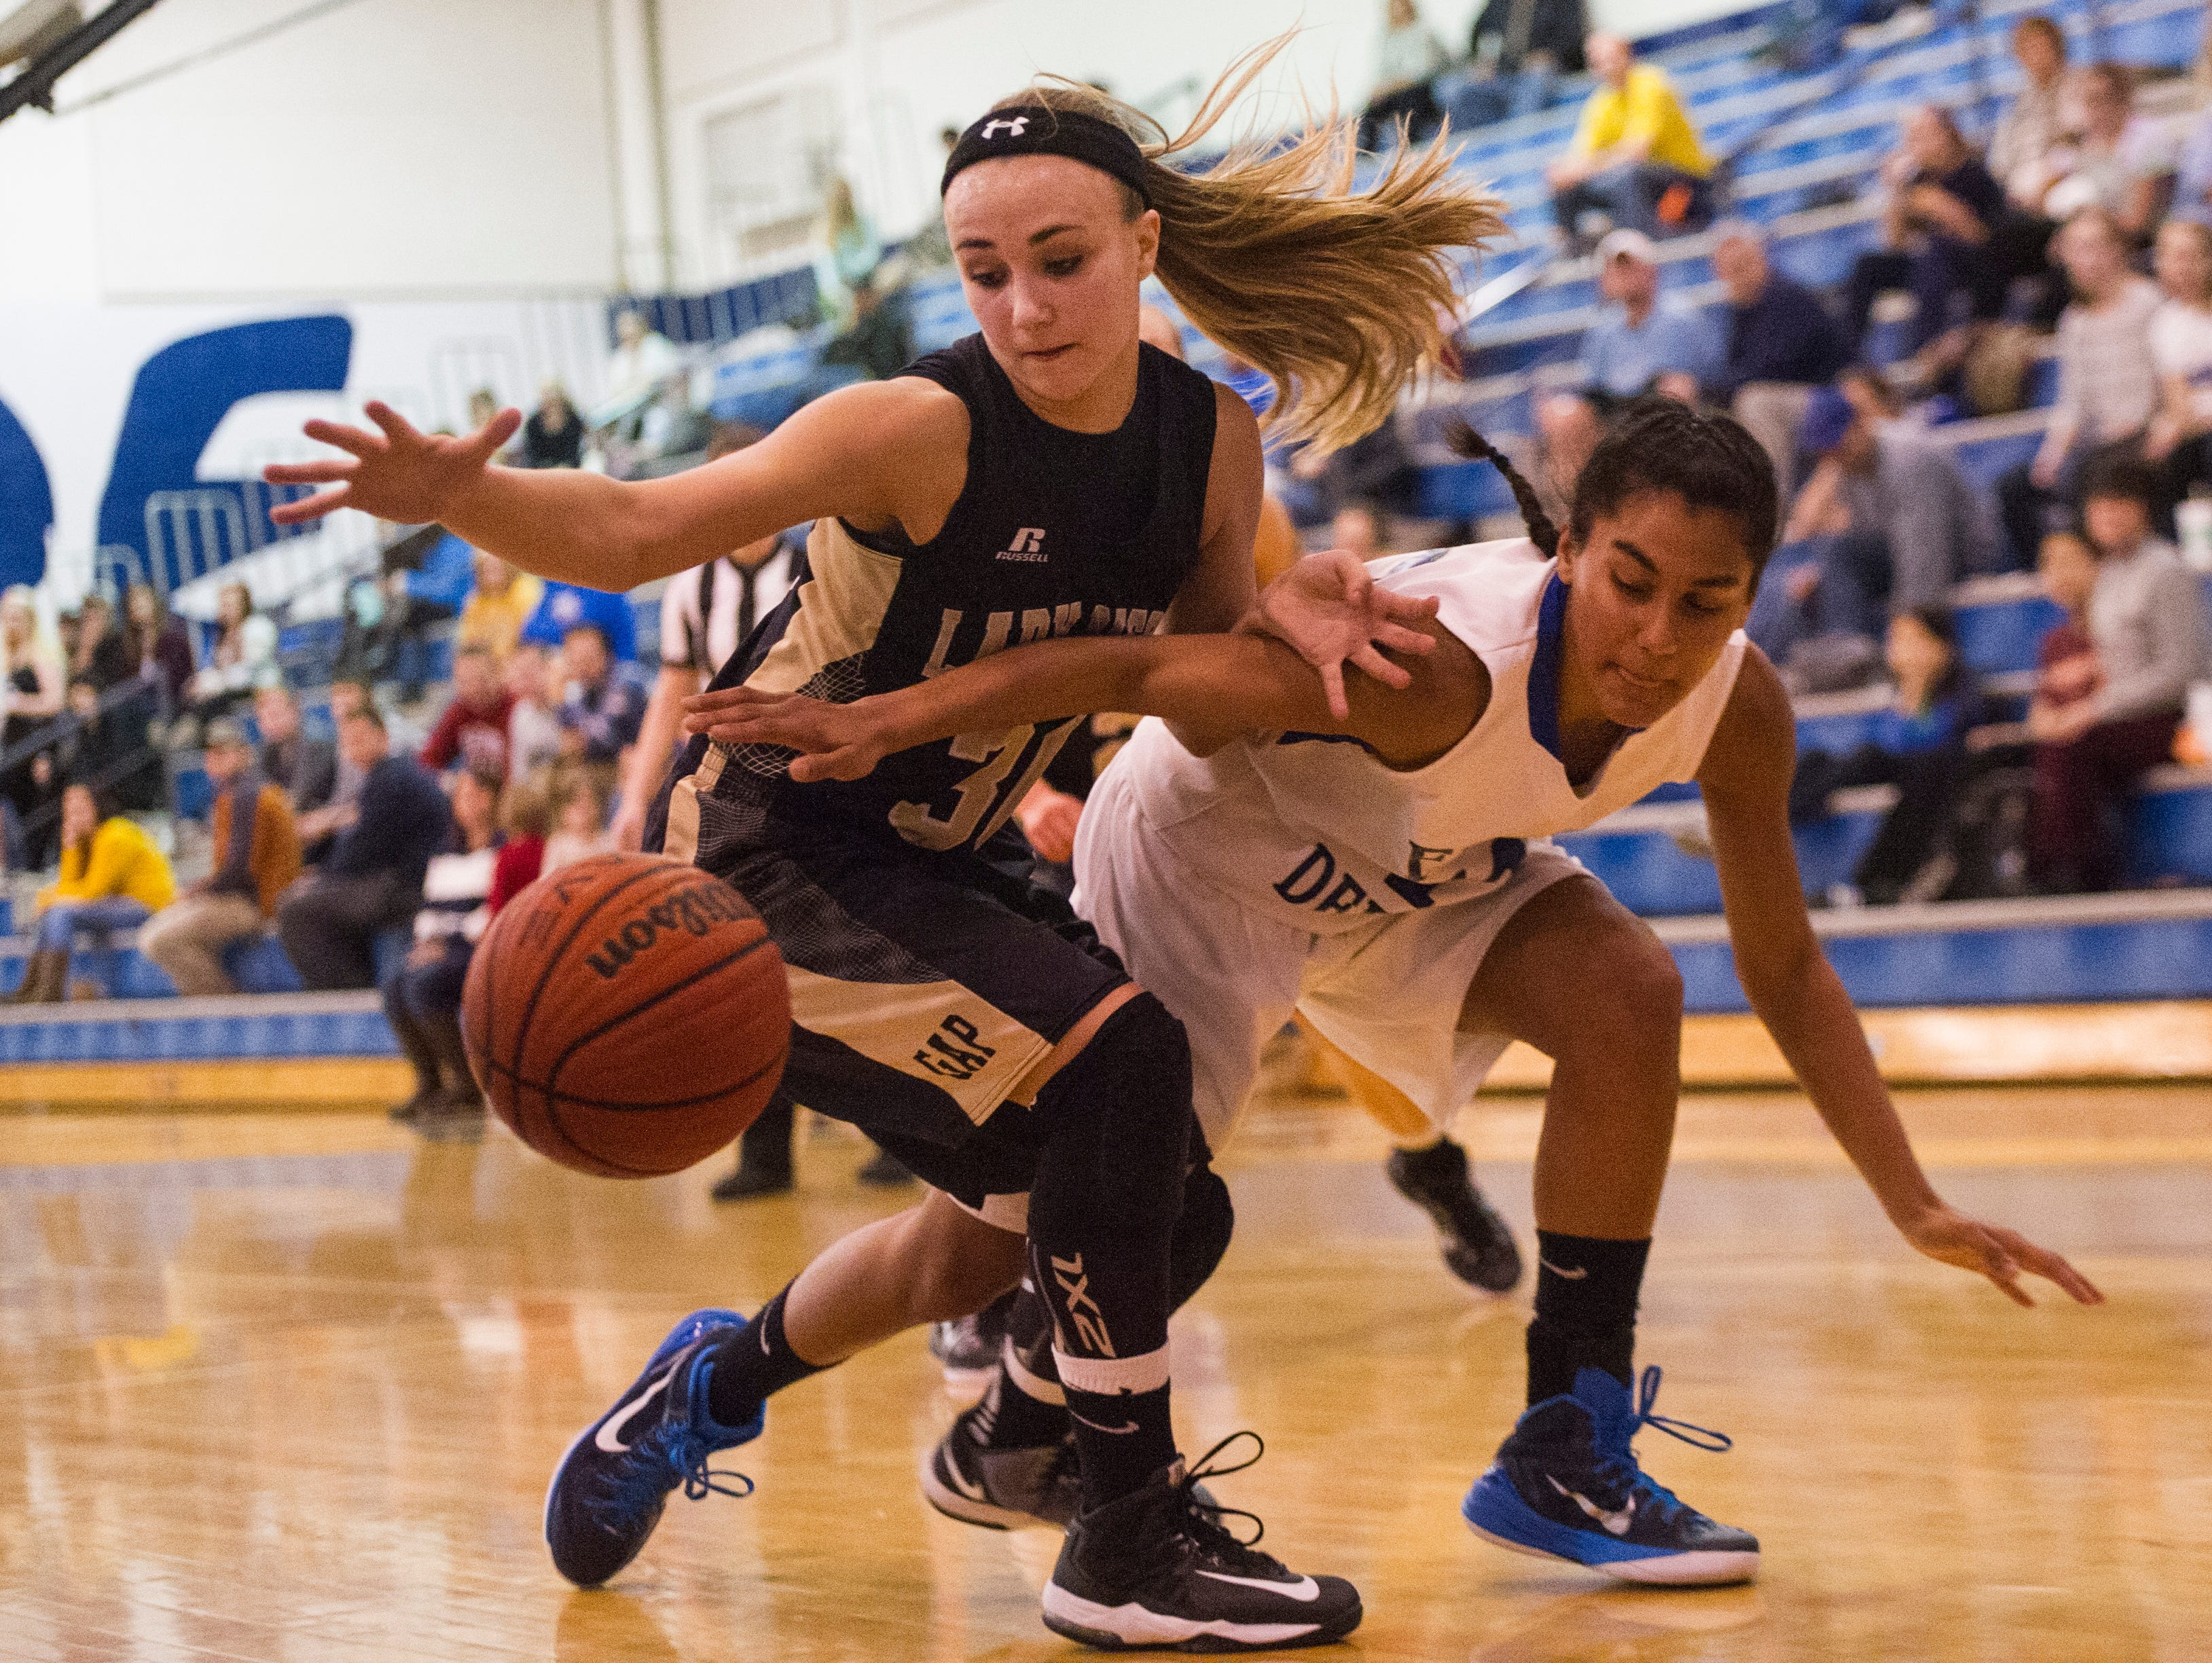 Buffalo Gap's Destiny Harper, left, and Fort Defiance's Tiffany Taylor fight for control of the during their game Friday.